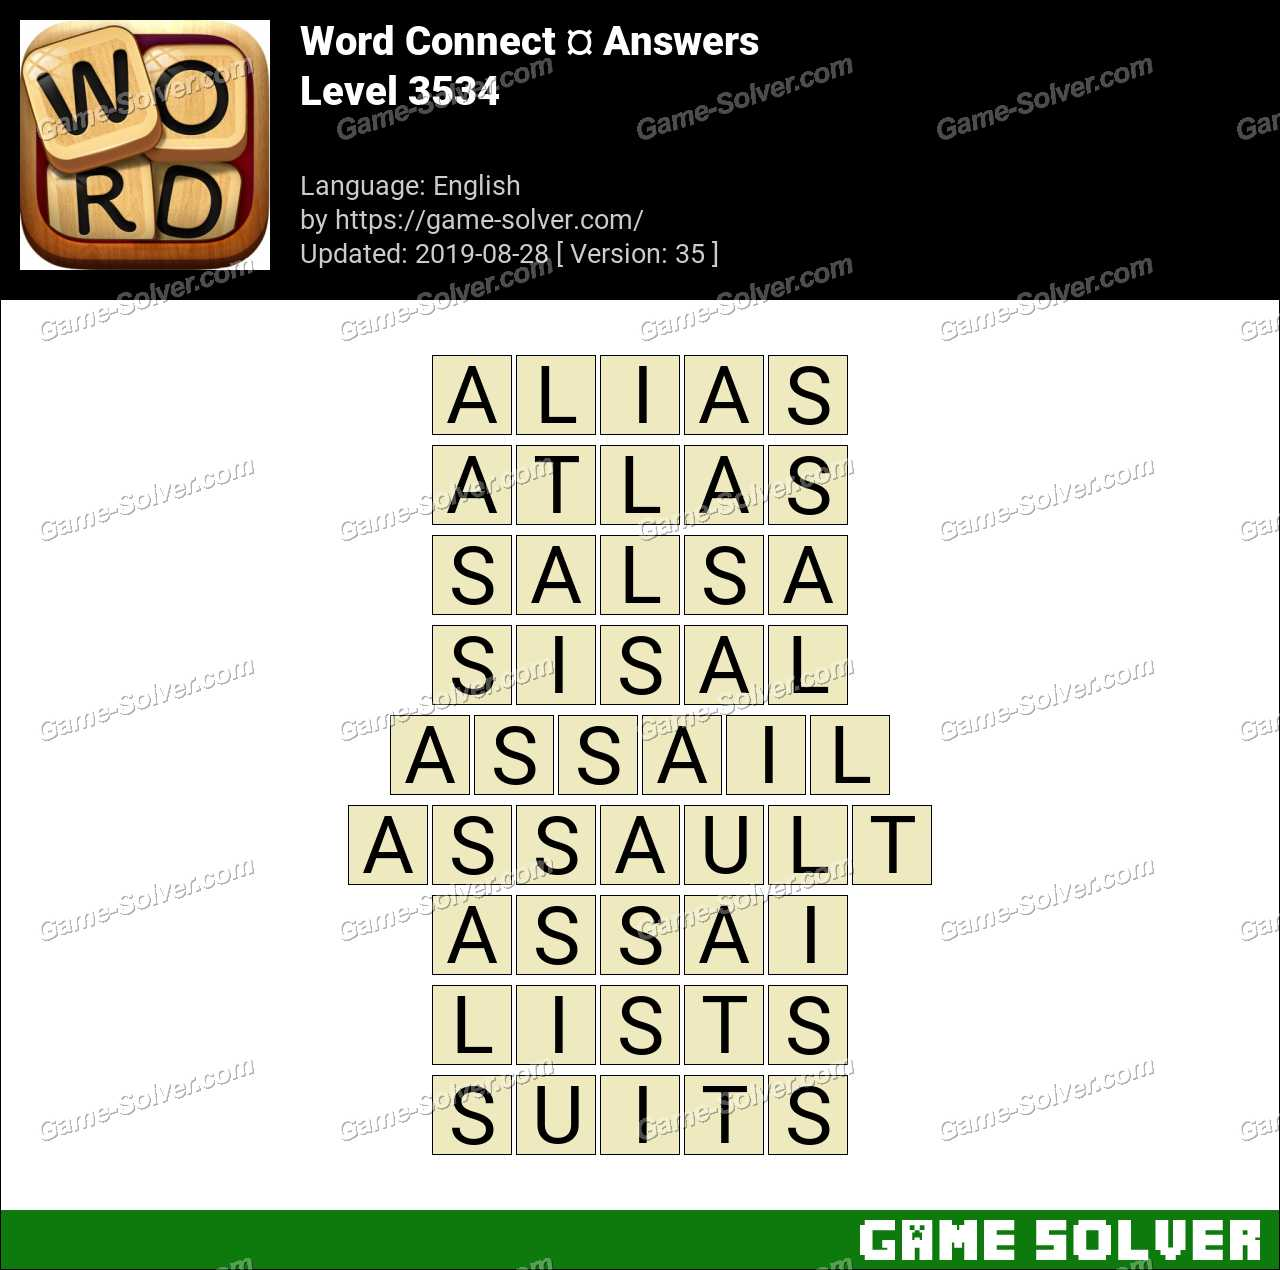 Word Connect Level 3534 Answers